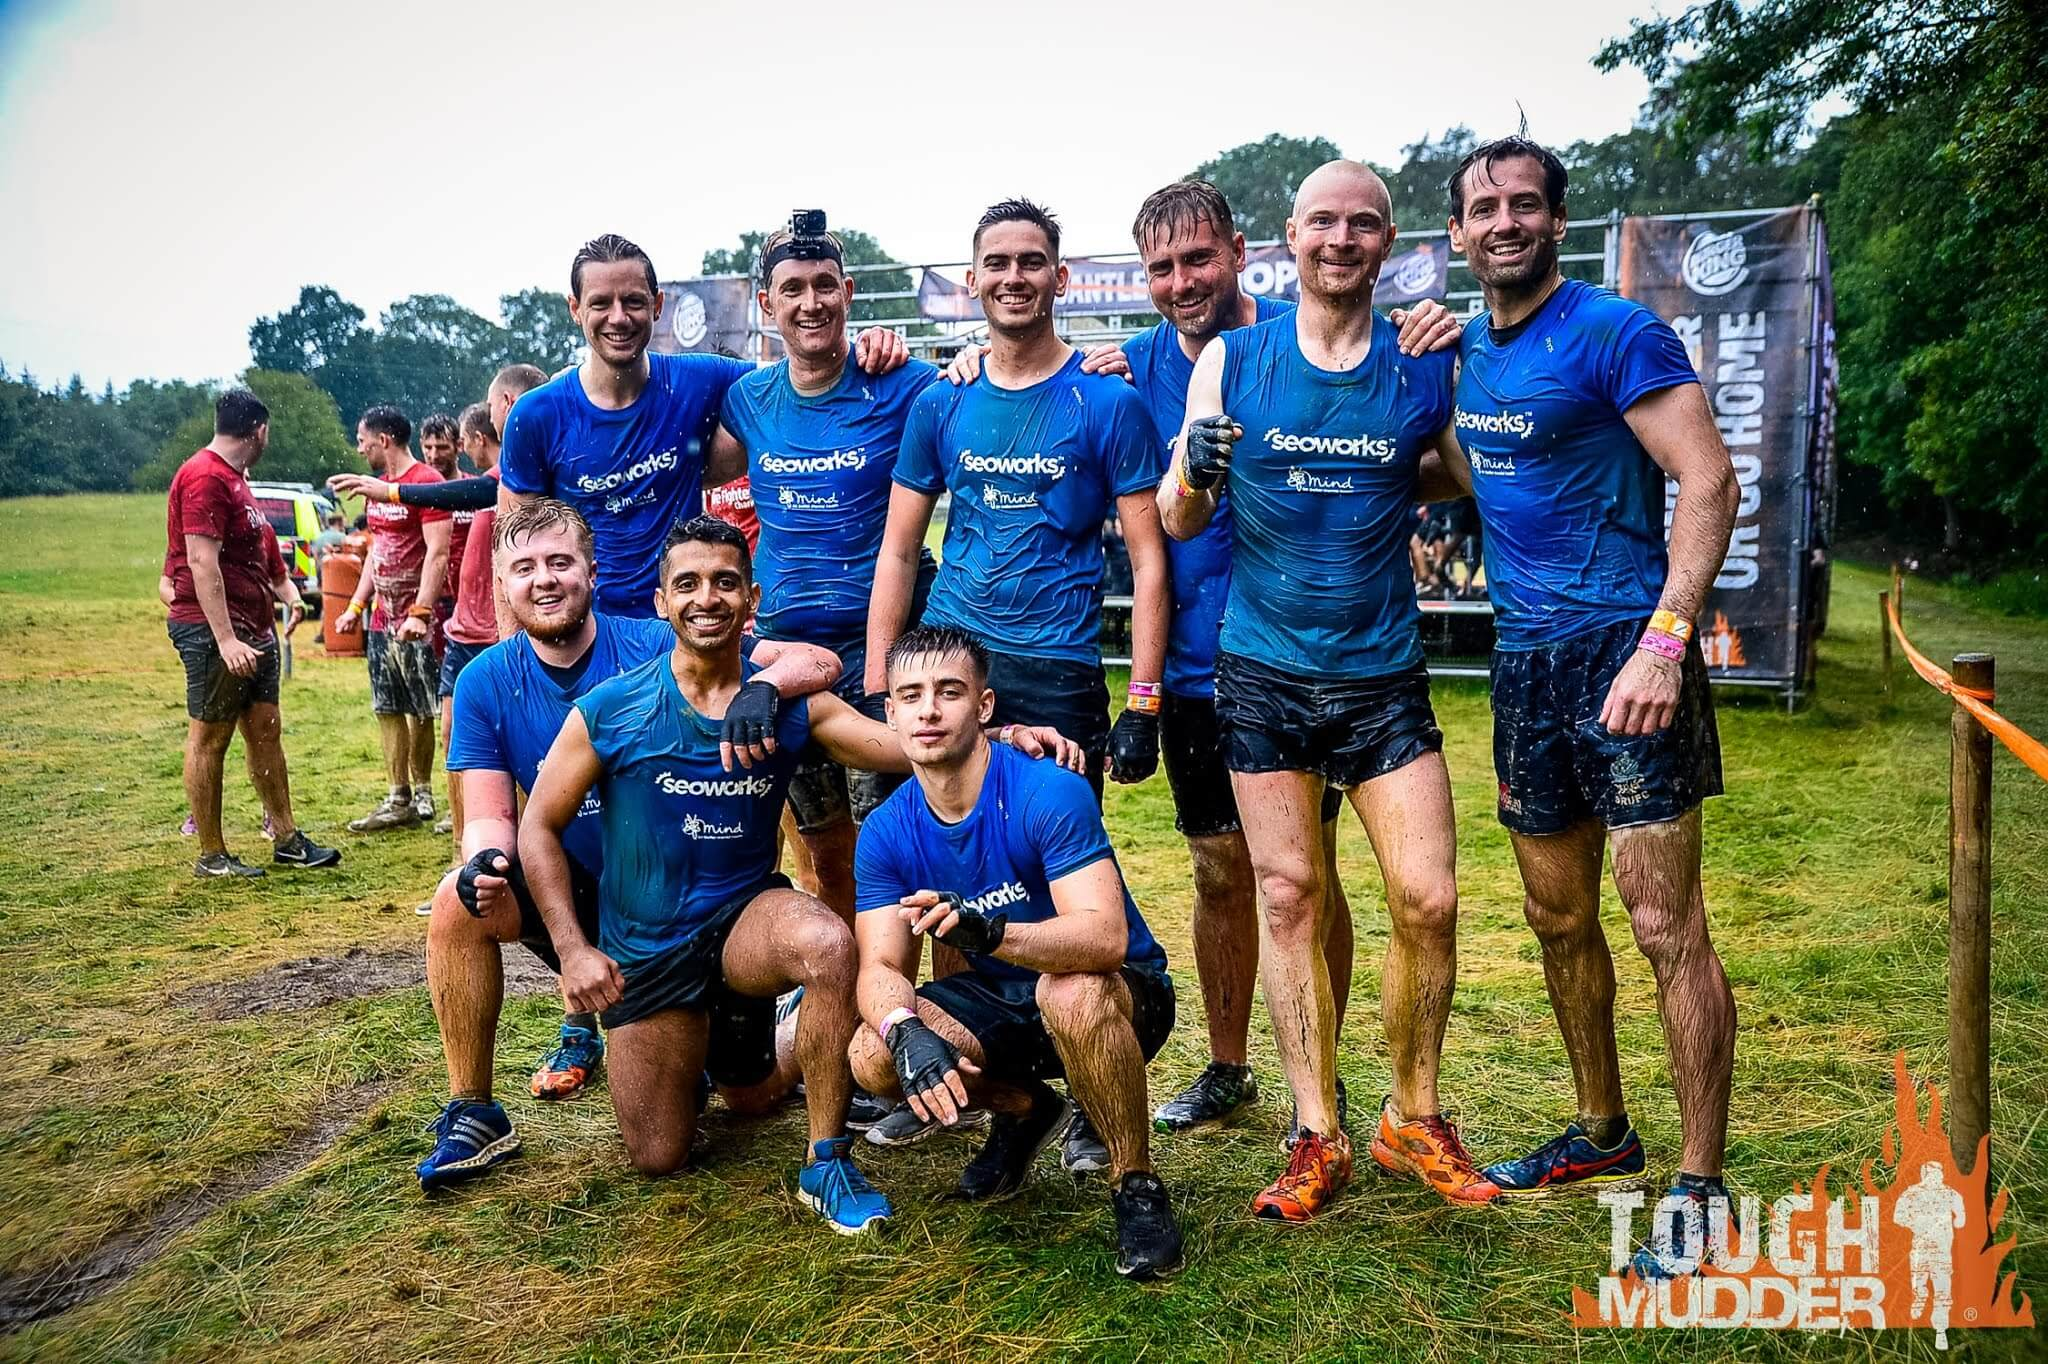 SEO Works does Tough Mudder